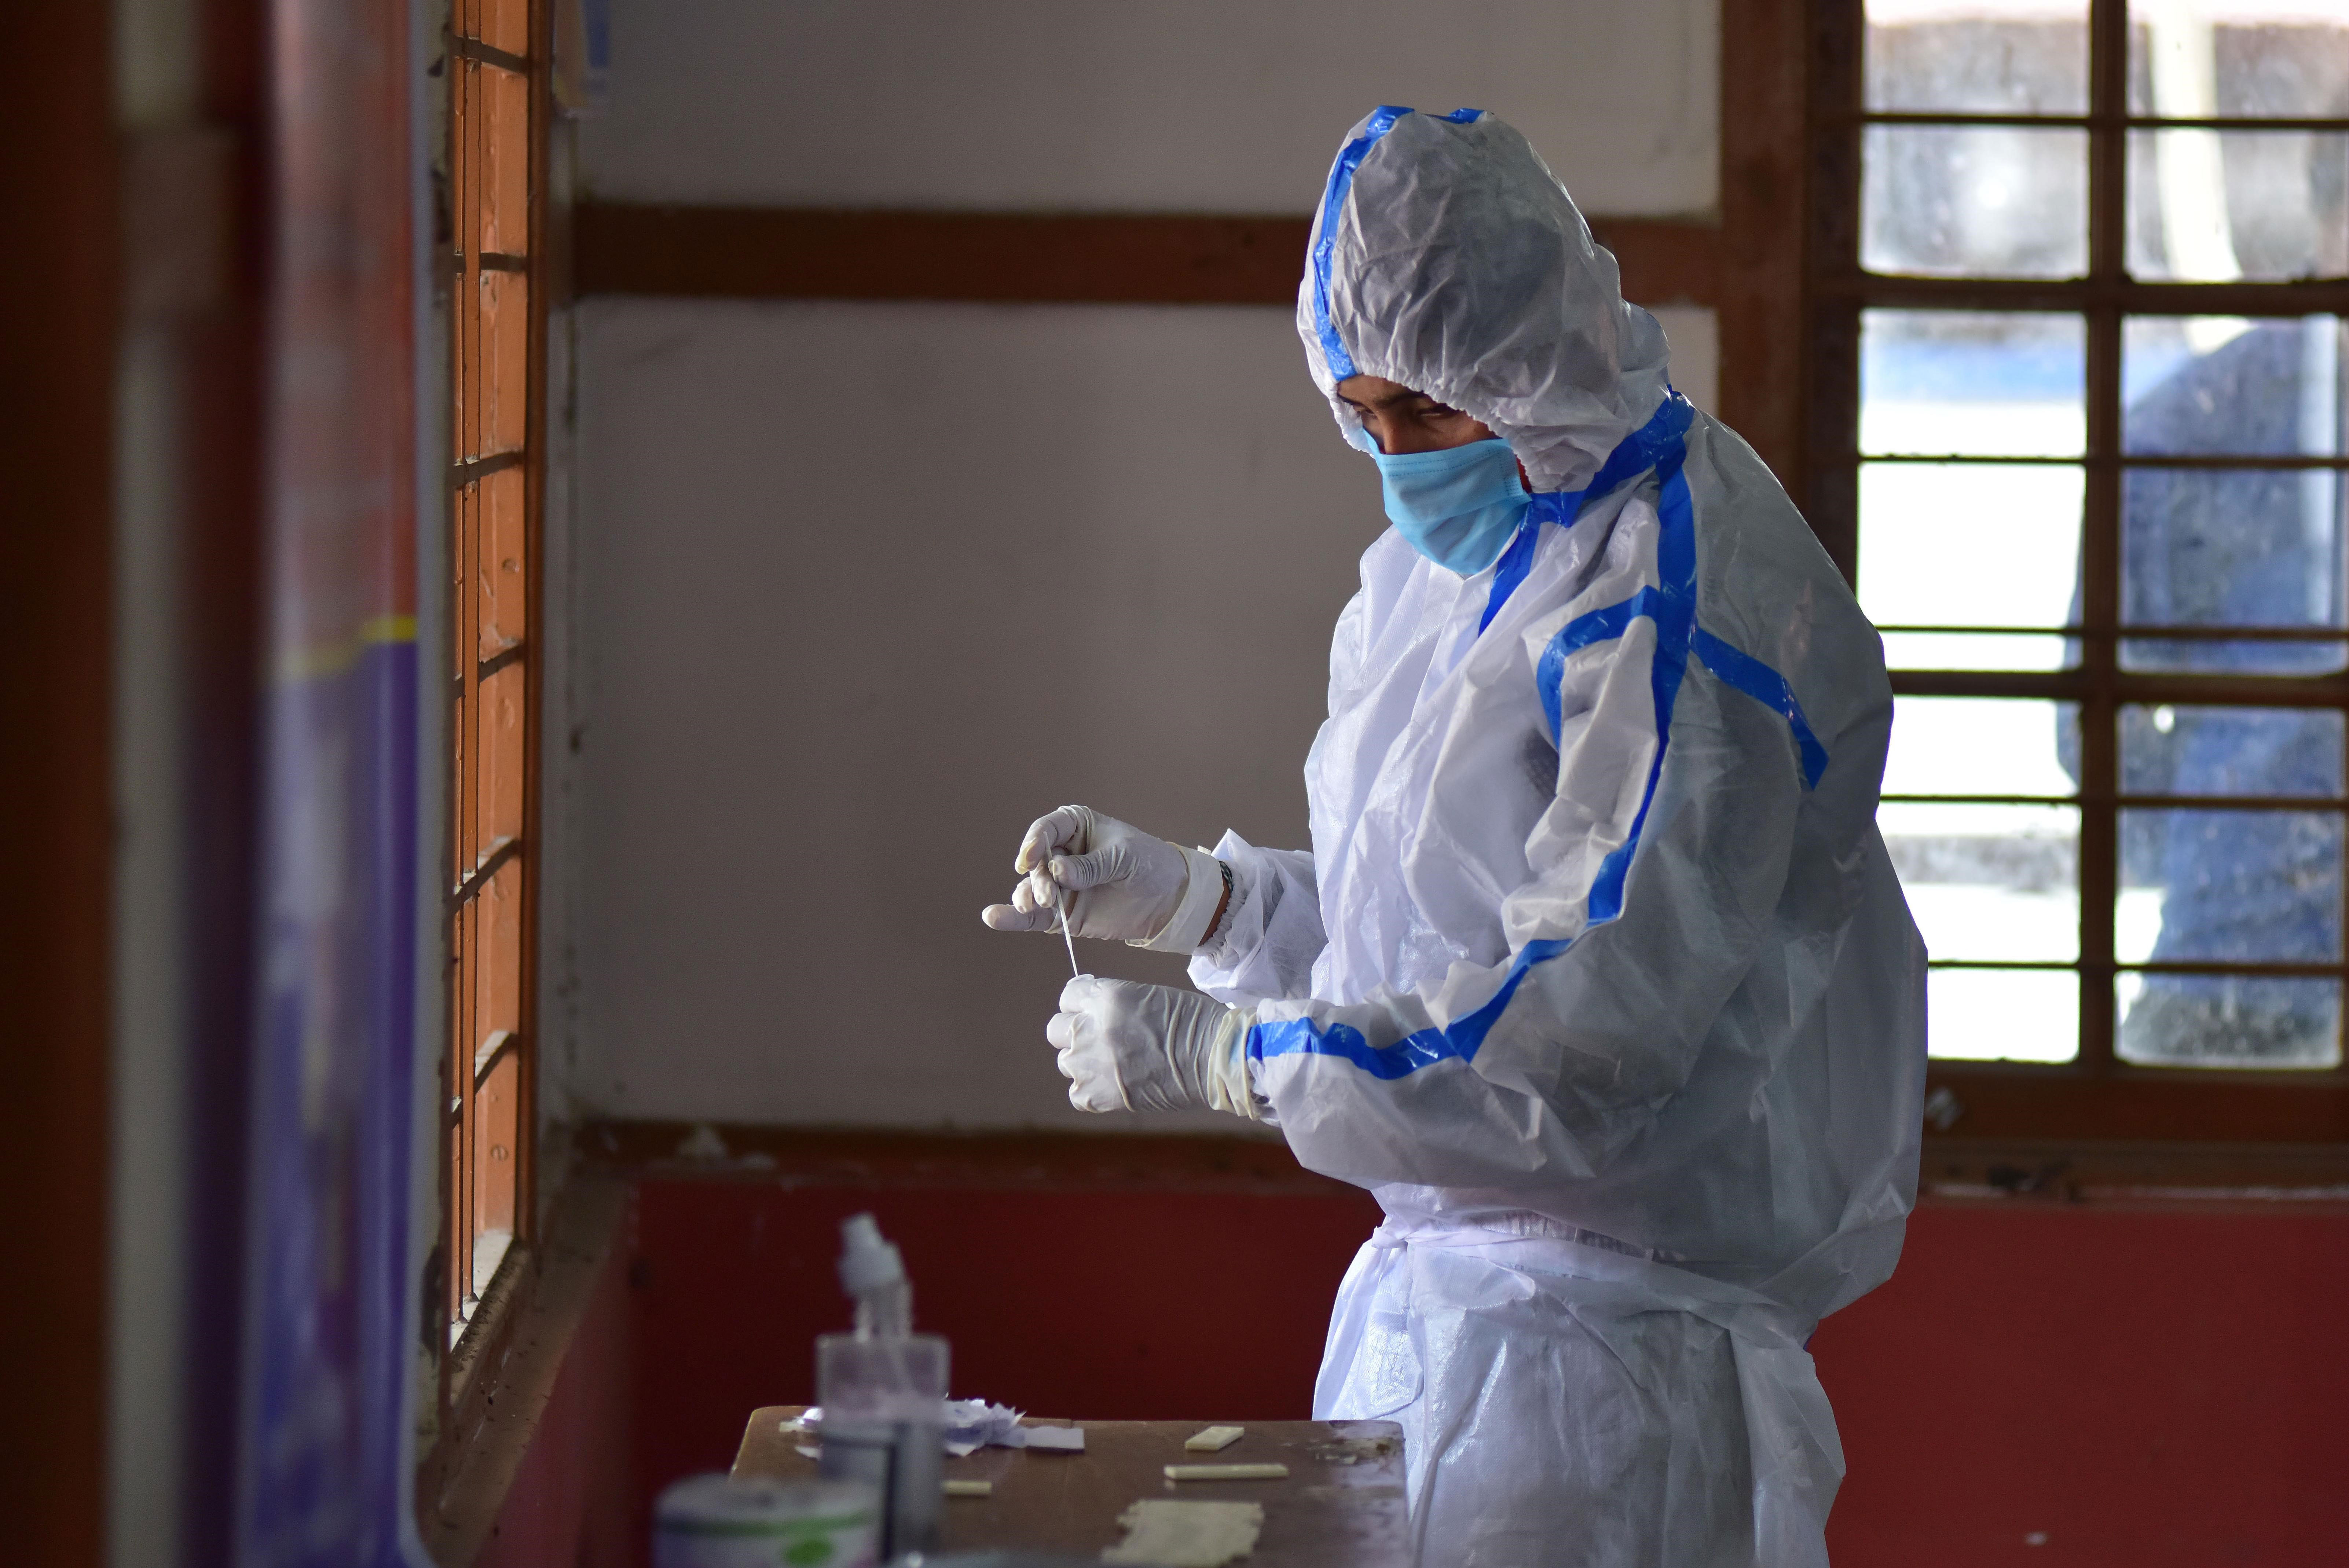 A health worker conducts a rapid antigen test for Covid-19 in Nagaon, India, on May 27.